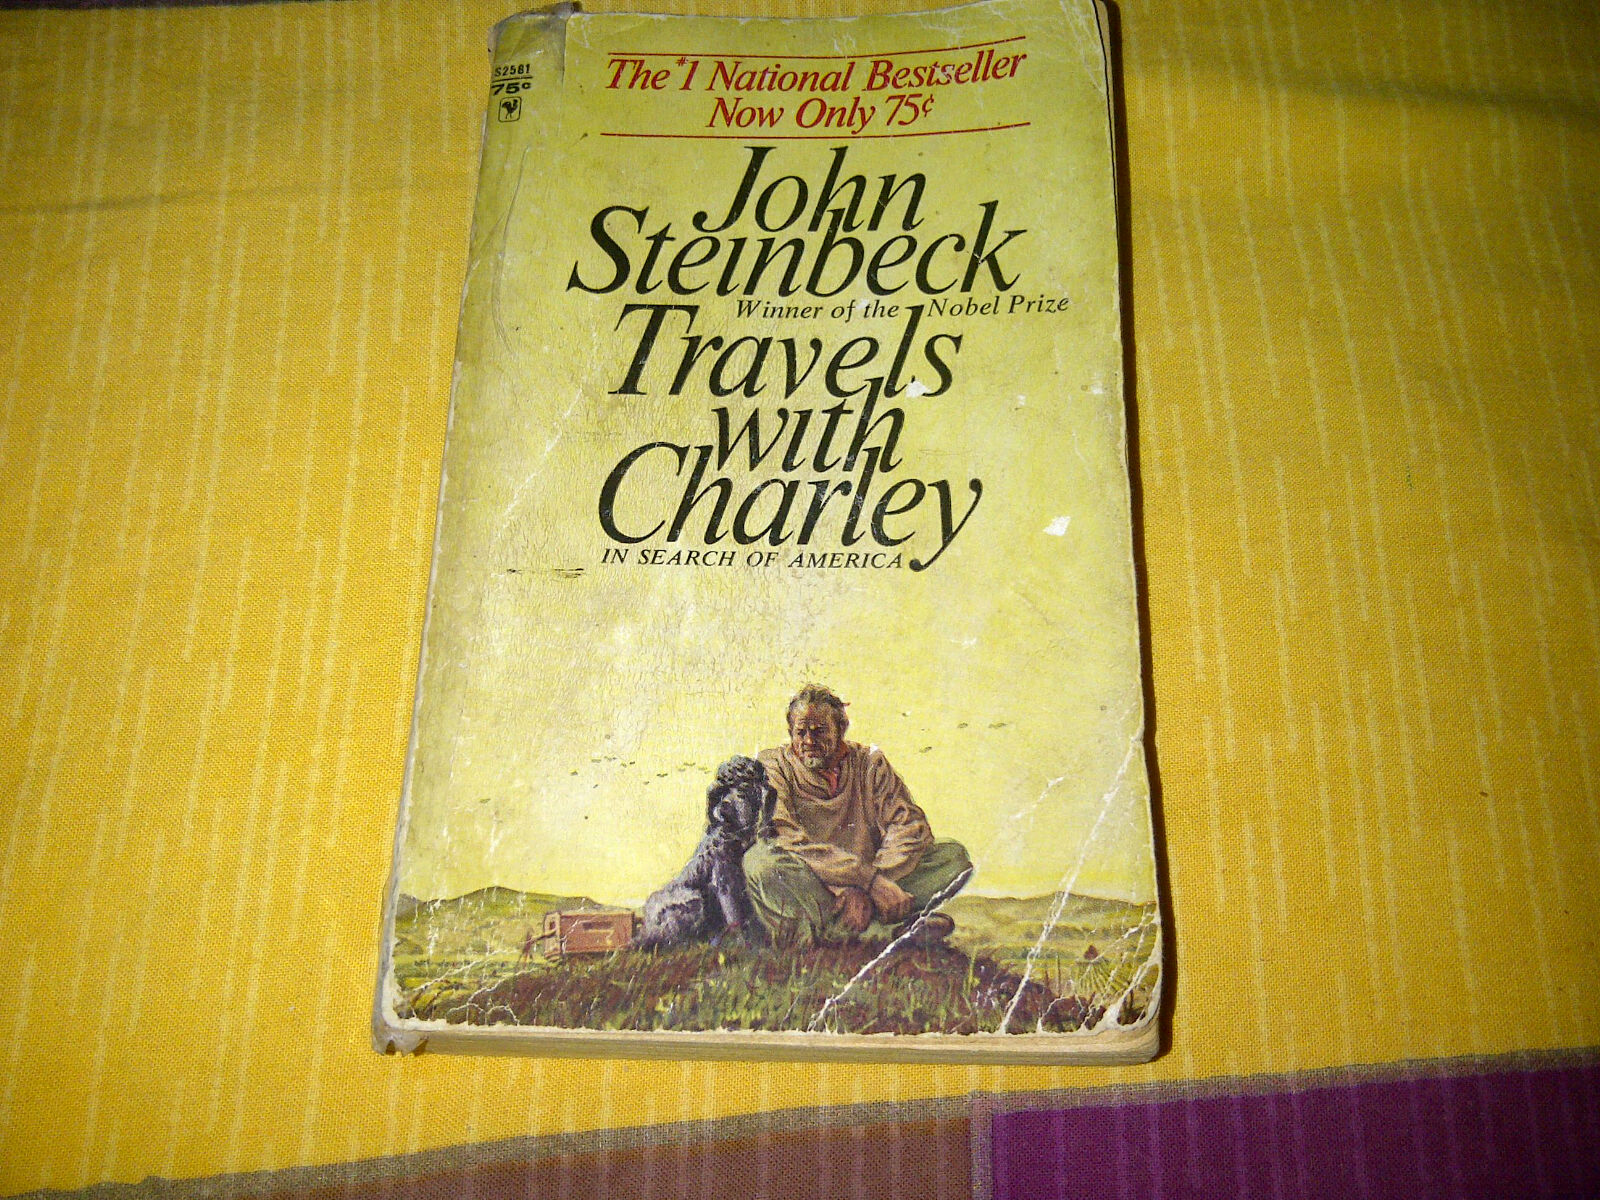 summary of travel with charley Travels with charley in search of america - john steinbeck.